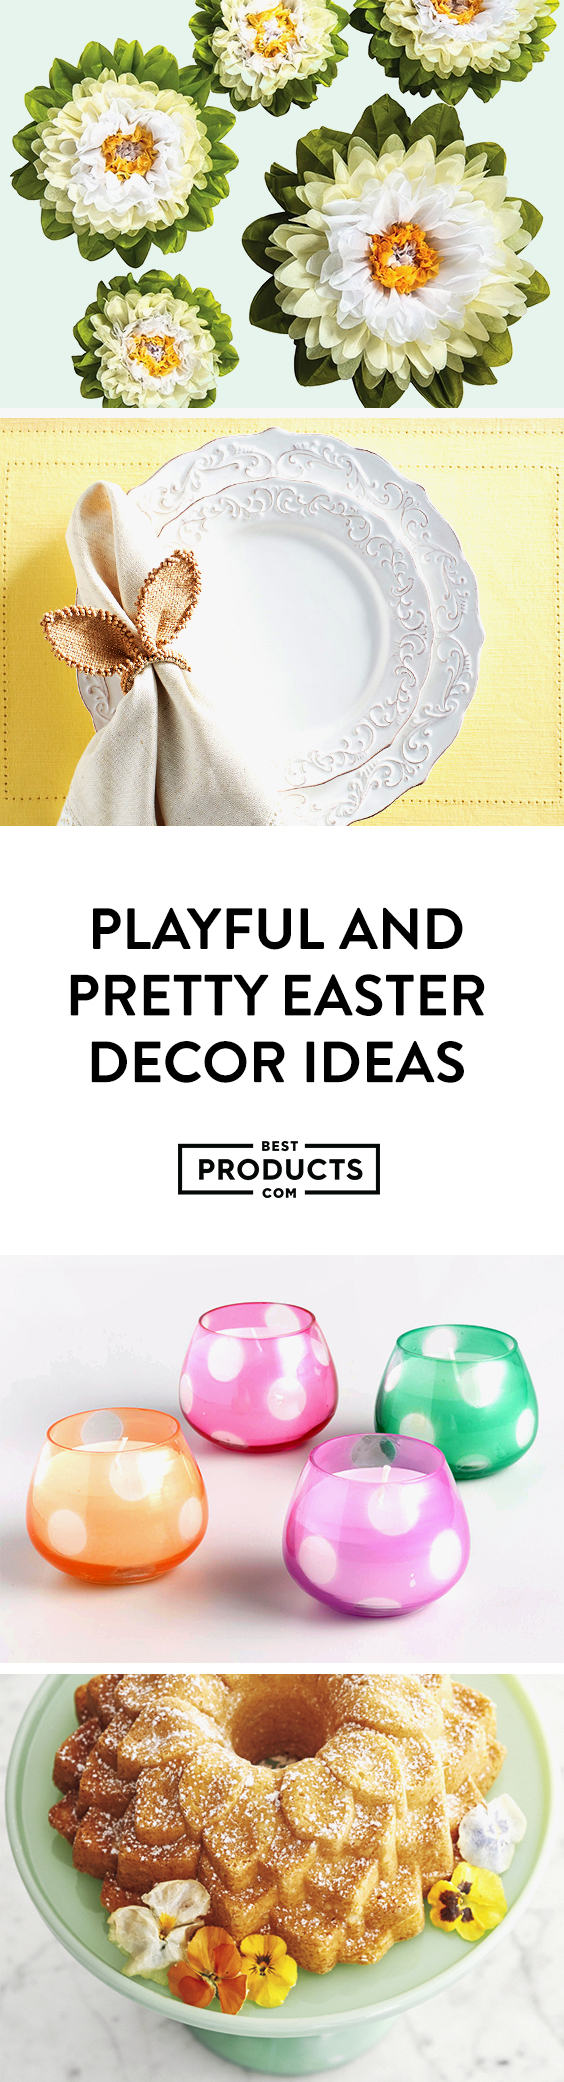 11 Best Easter Decorations Of 2018 Pretty Home Decor